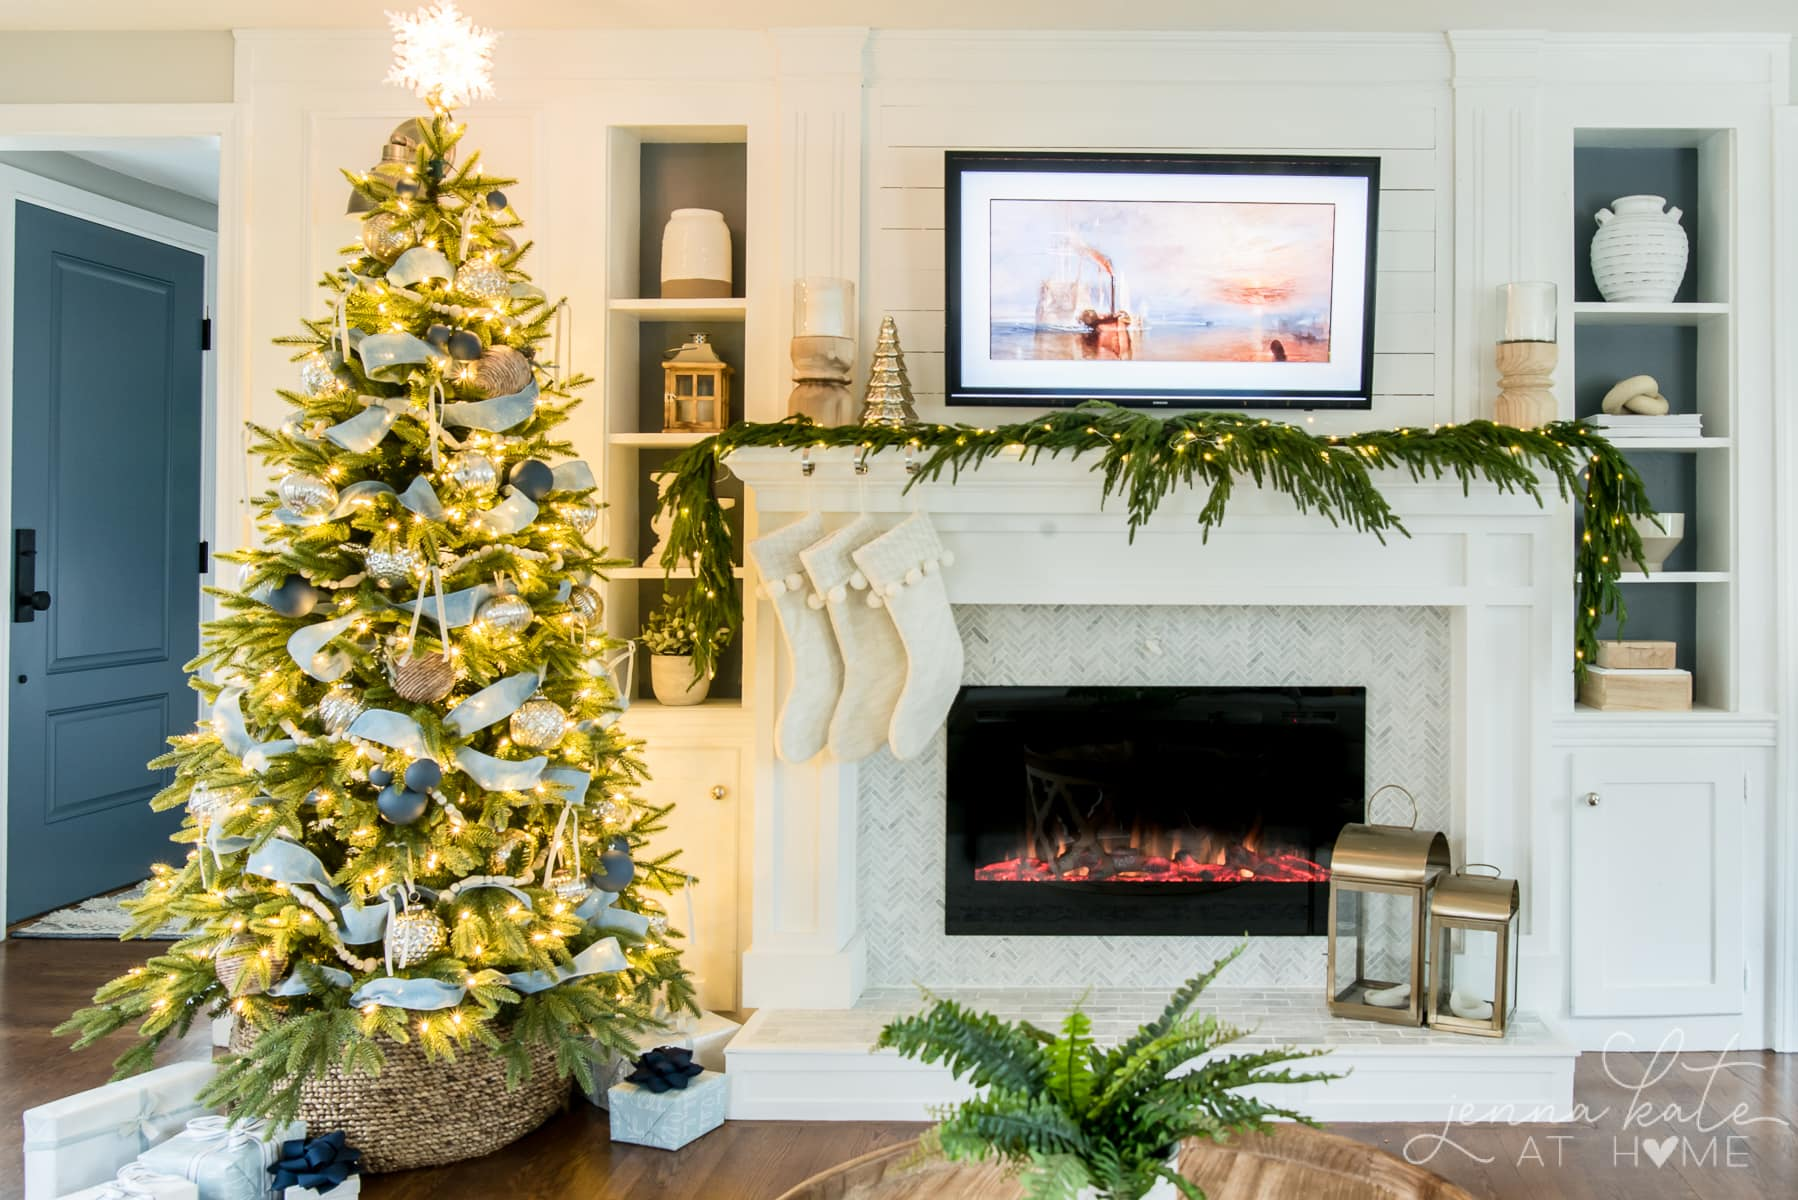 Living room fireplace mantel with green garland and Christmas tree decorating with blue and silver